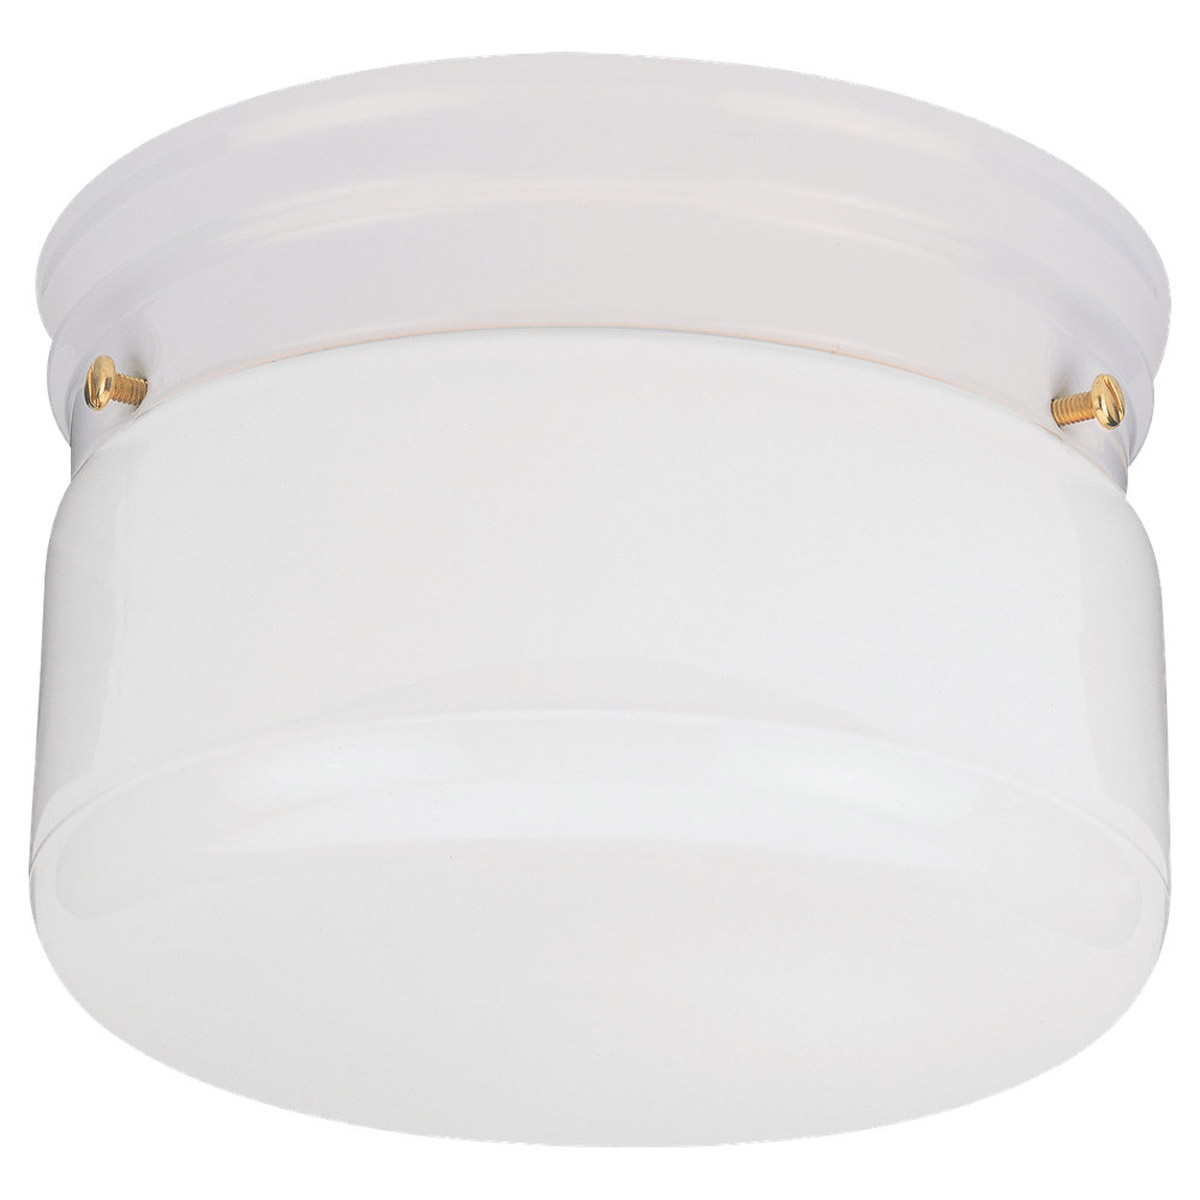 Sea Gull Lighting Economy Flush Mount 1 Light Flush Mount in White 5321-15 photo